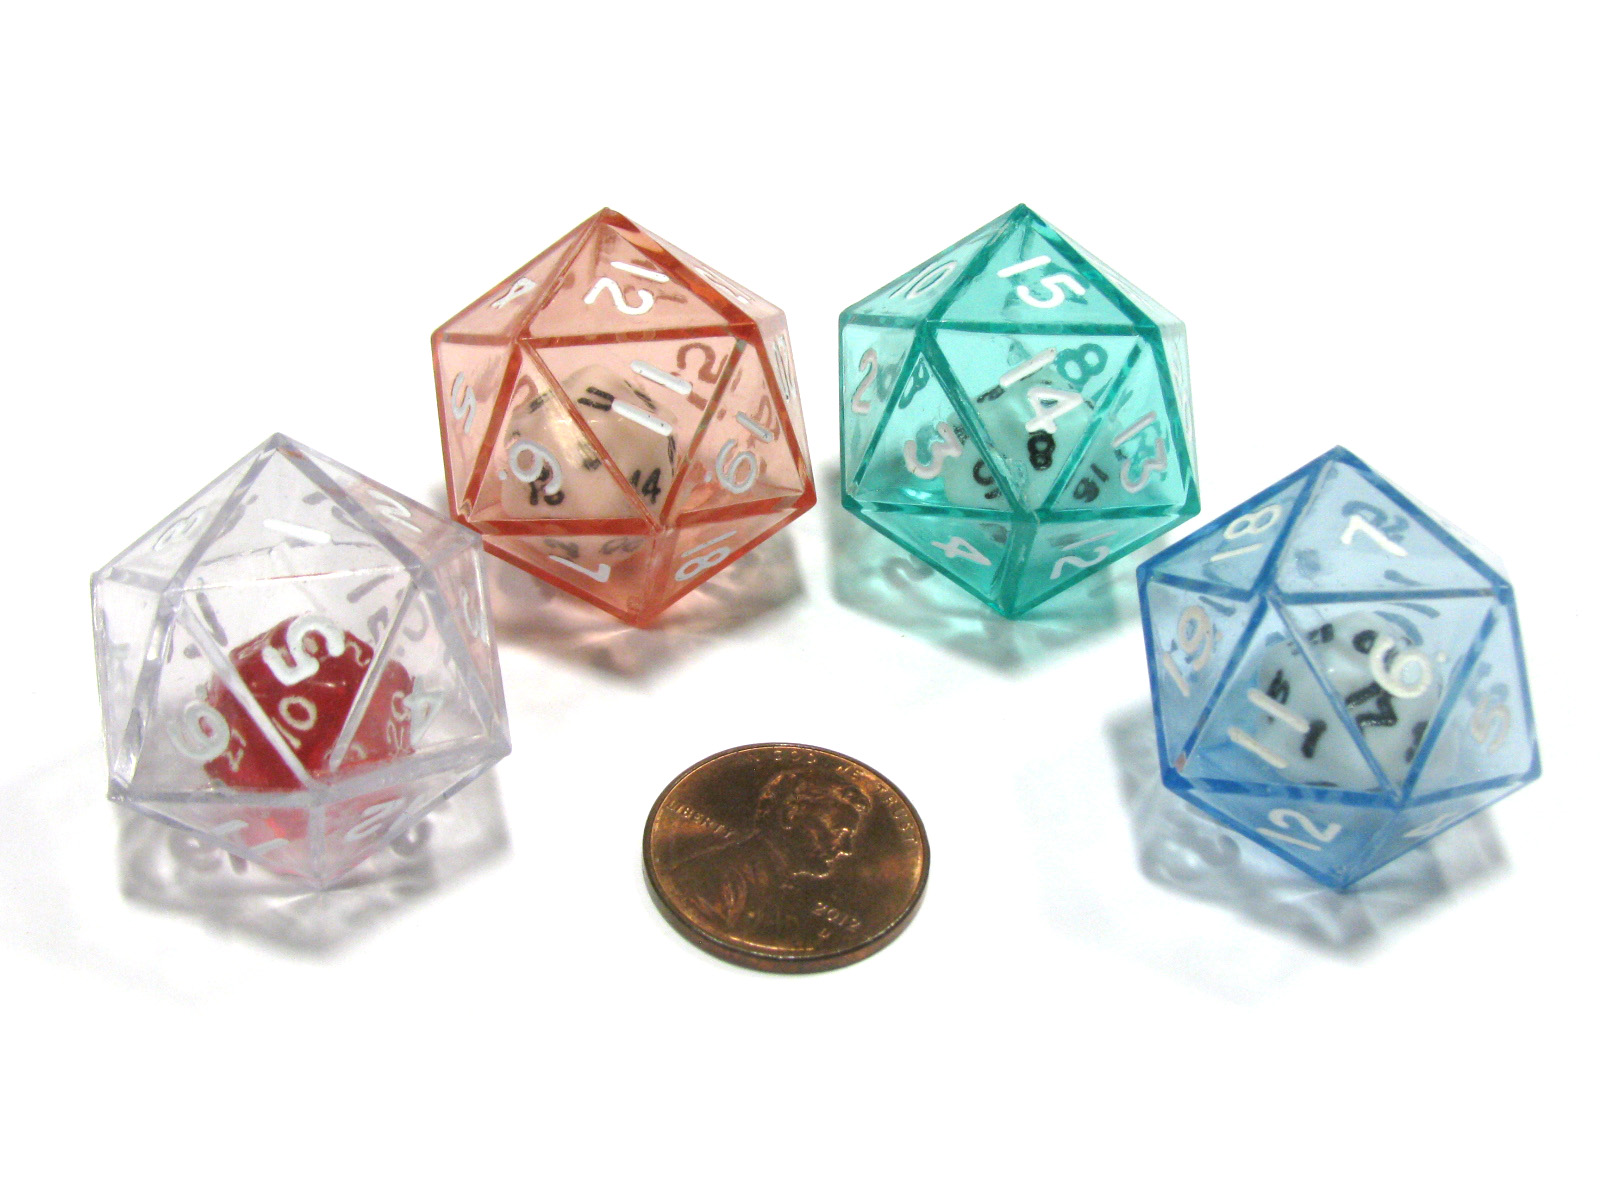 Set of 2 D12 25mm Double Dice 2-In-1 Dice White Inside Translucent Red Die